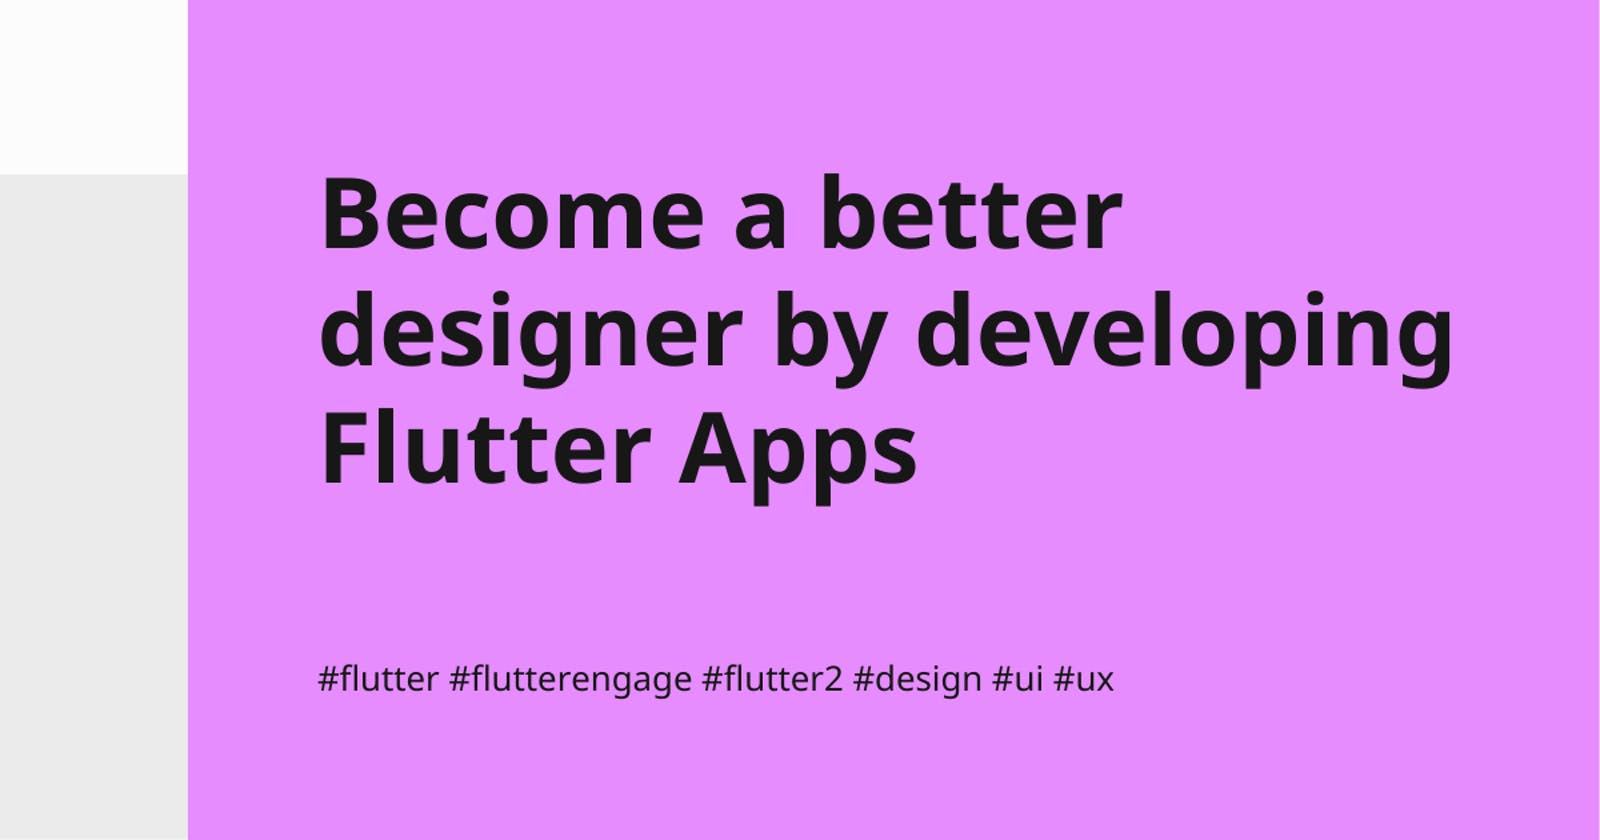 Become a better designer by developing Flutter Apps